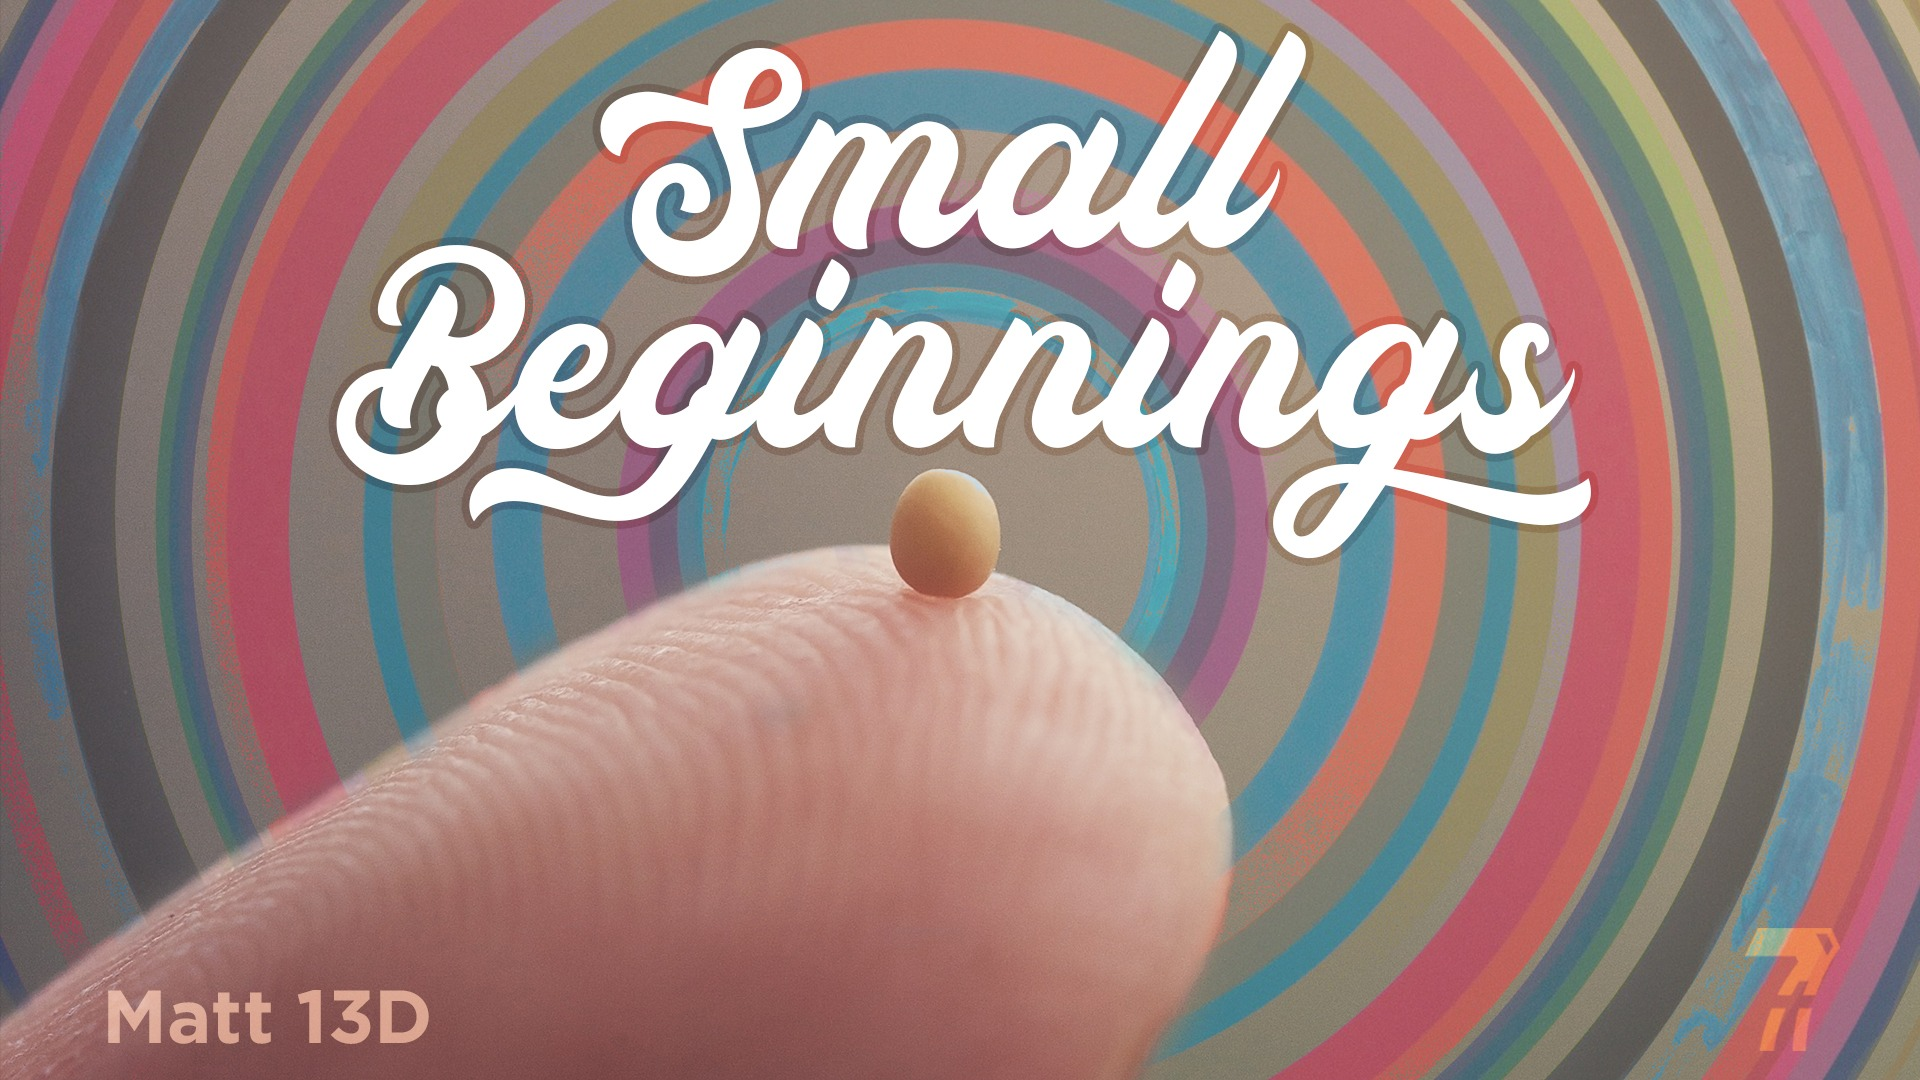 Matthew 13d – Small Beginnings